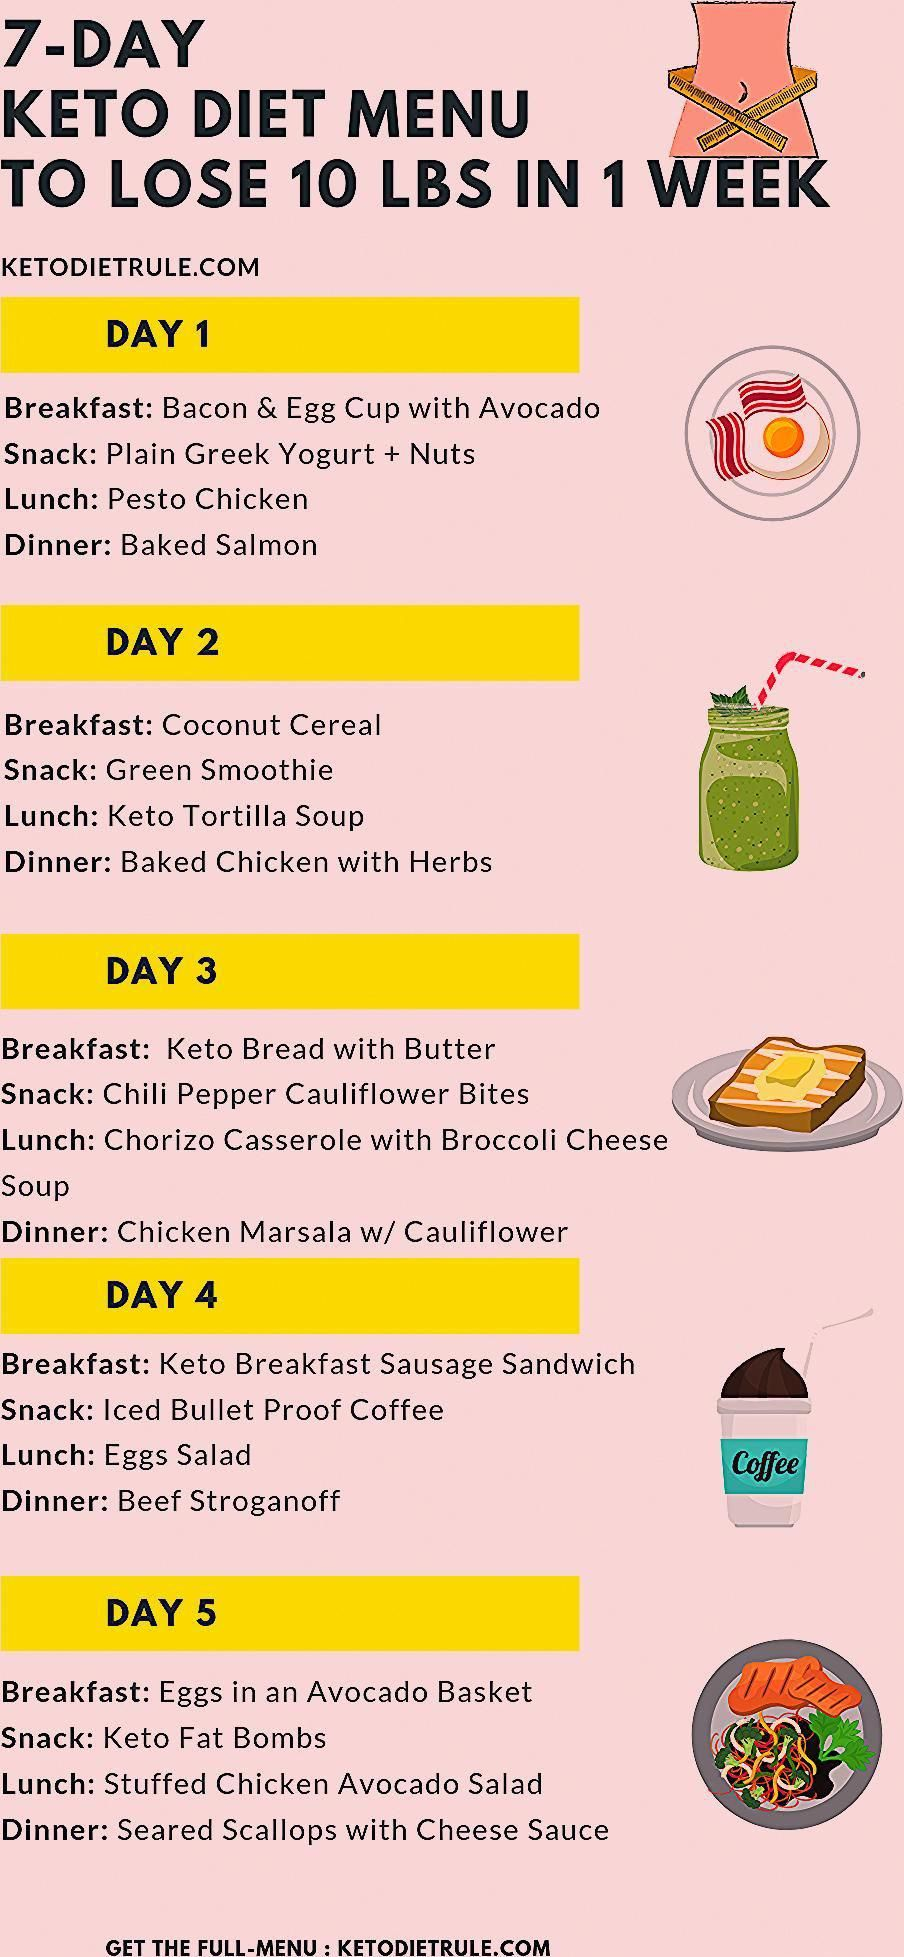 7Day Keto Diet Meal Plan and Menu for Beginners to Lose Weight